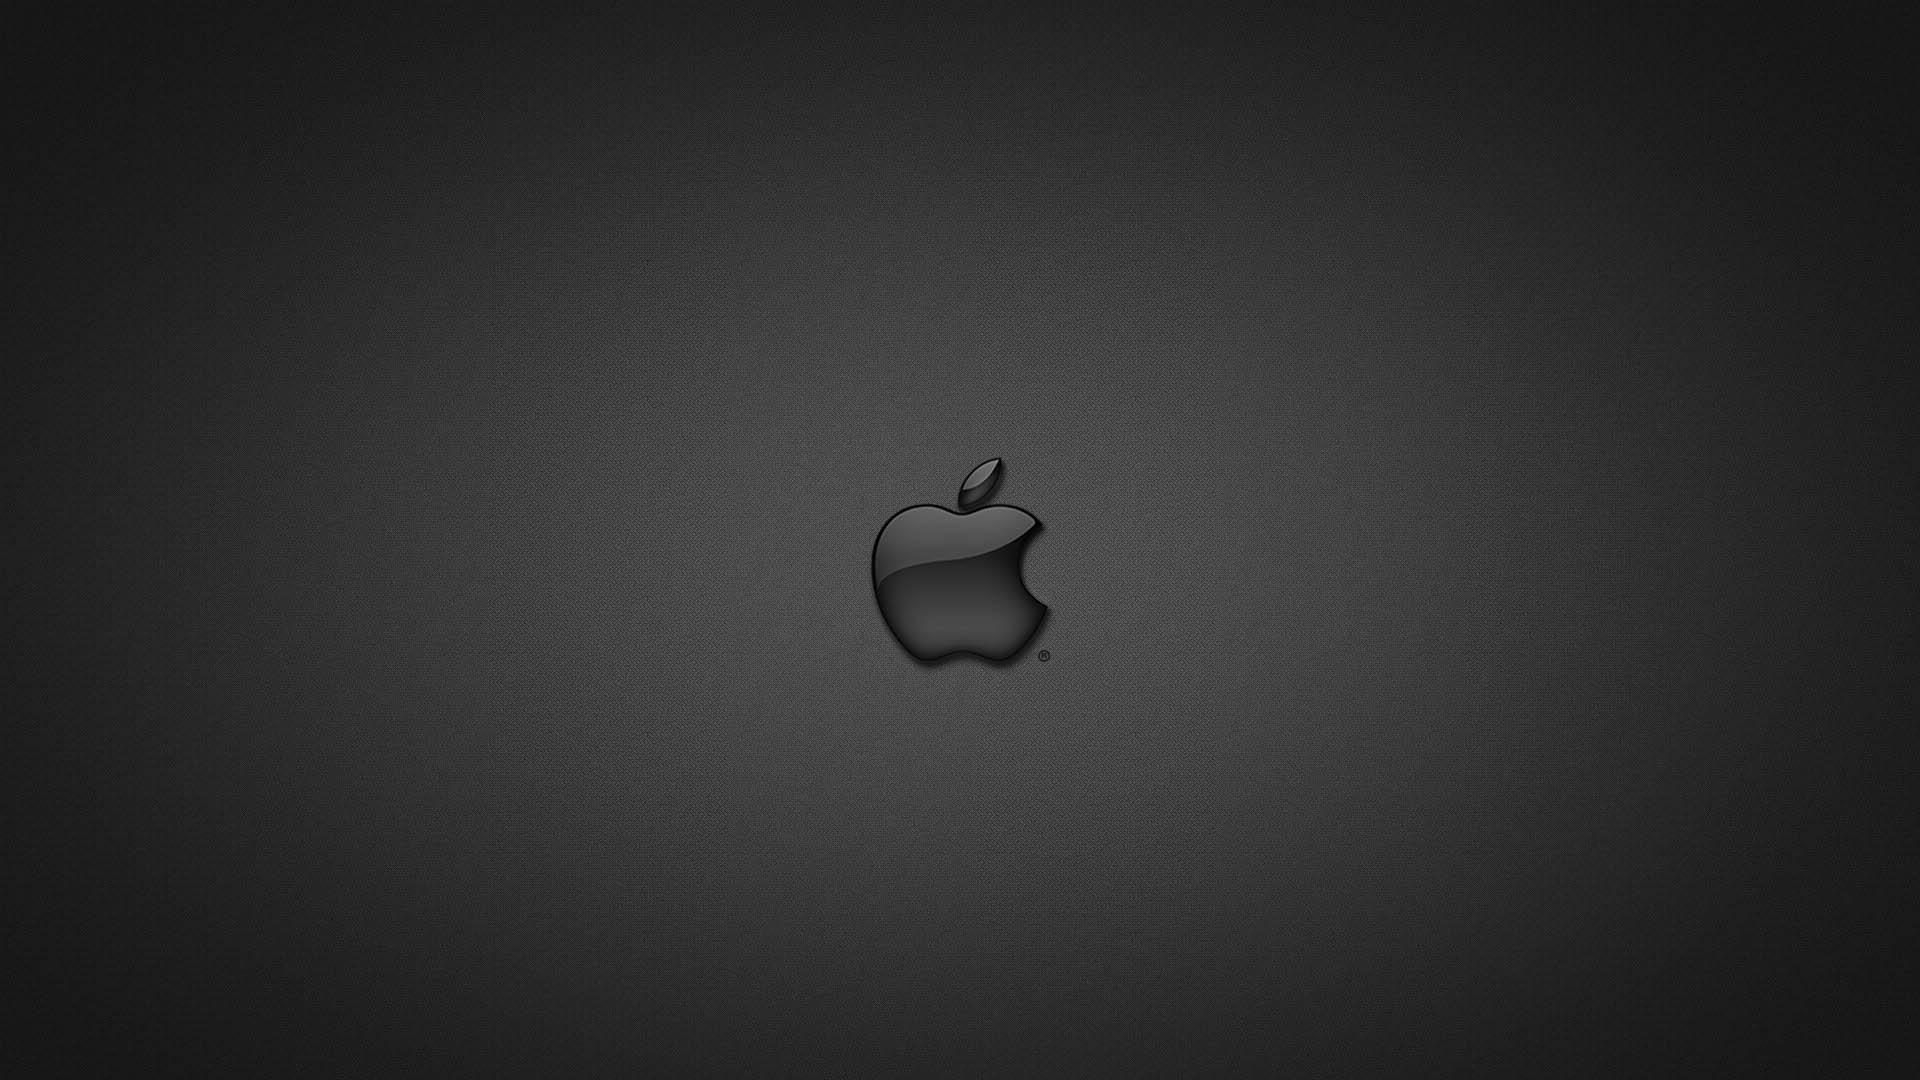 Apple wallpapers hd 1080p wallpaper cave for Sfondi apple hd